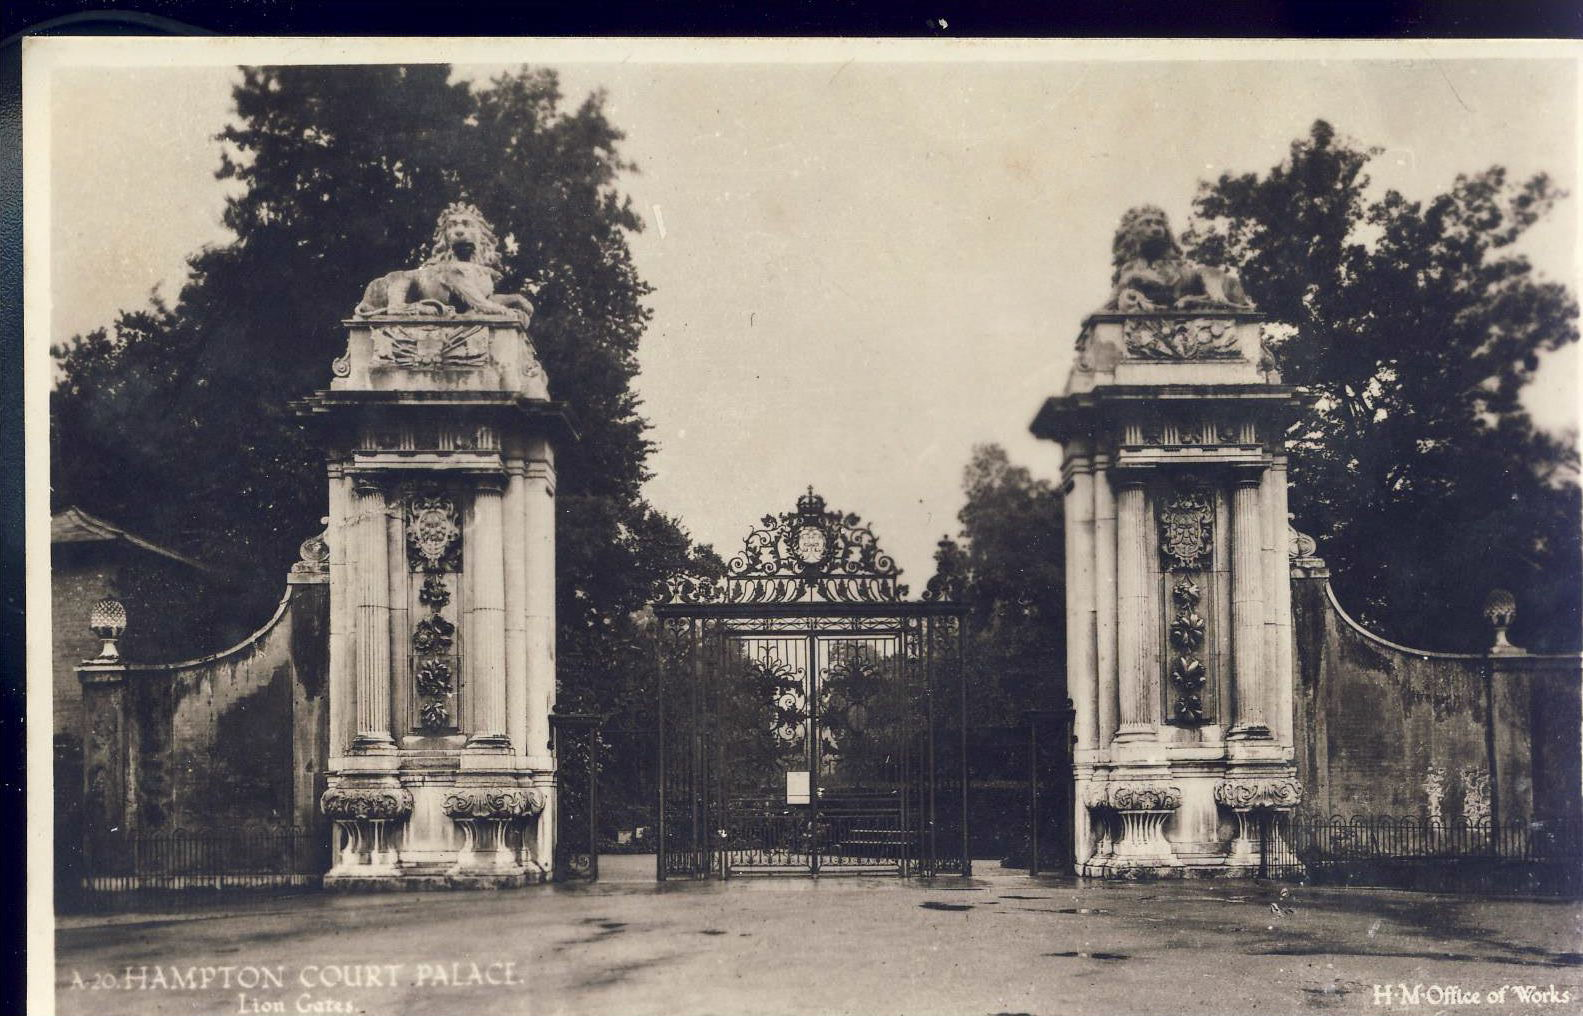 HAMPTON COURT PALACE lion Gates Old H.M. Office of Works Postcard refP9 Pre-owned unused condition.